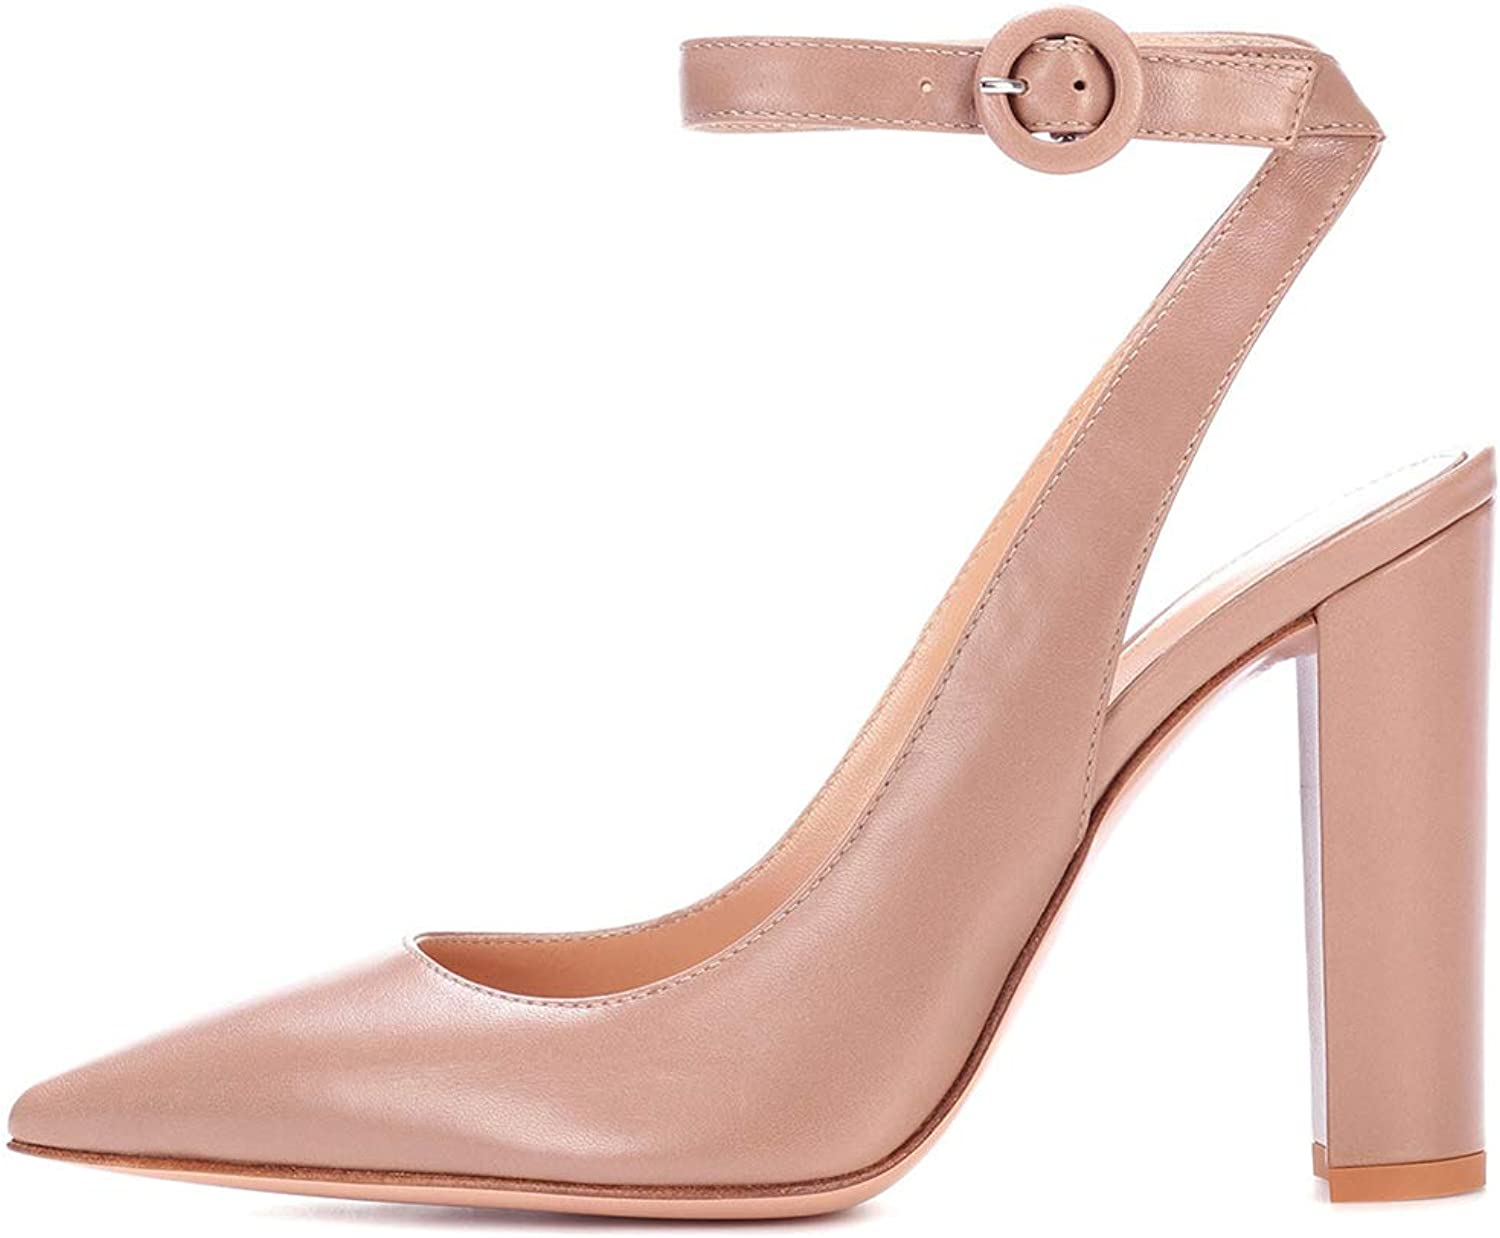 Women Pumps High Heel shoes Ankle Strap Sandals Block Heeled Buckle Pointed Toe Party Dress Evening Black Brown Court shoes Size 35-46